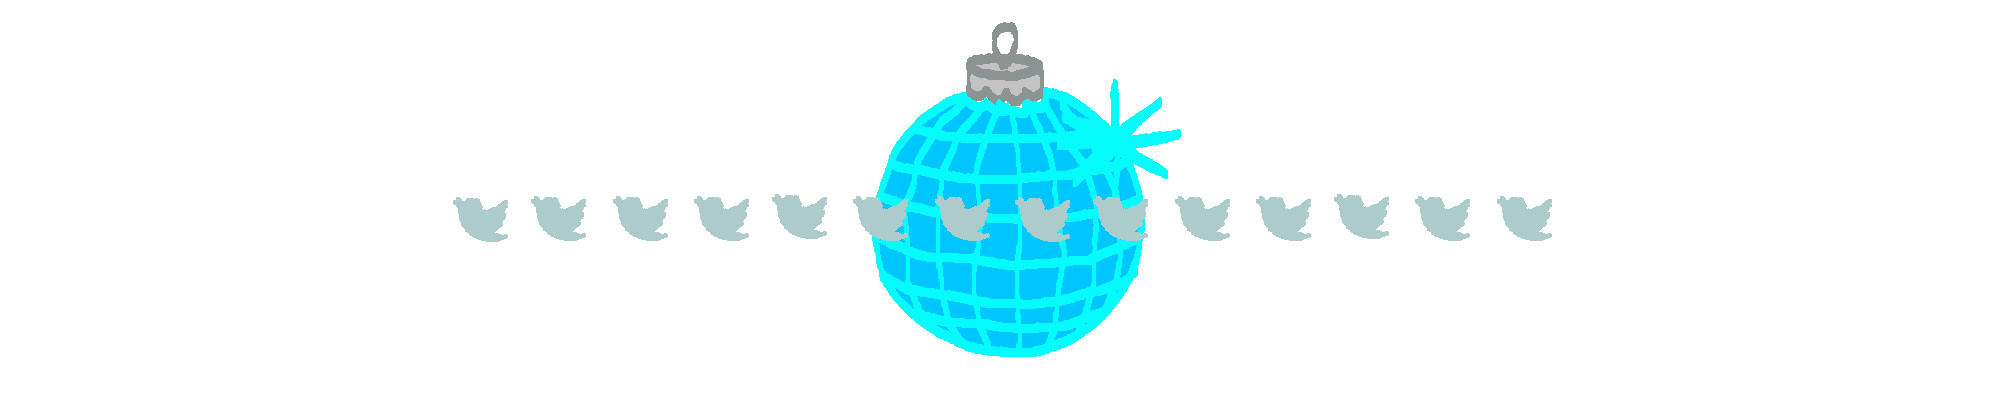 Twitter footer 2